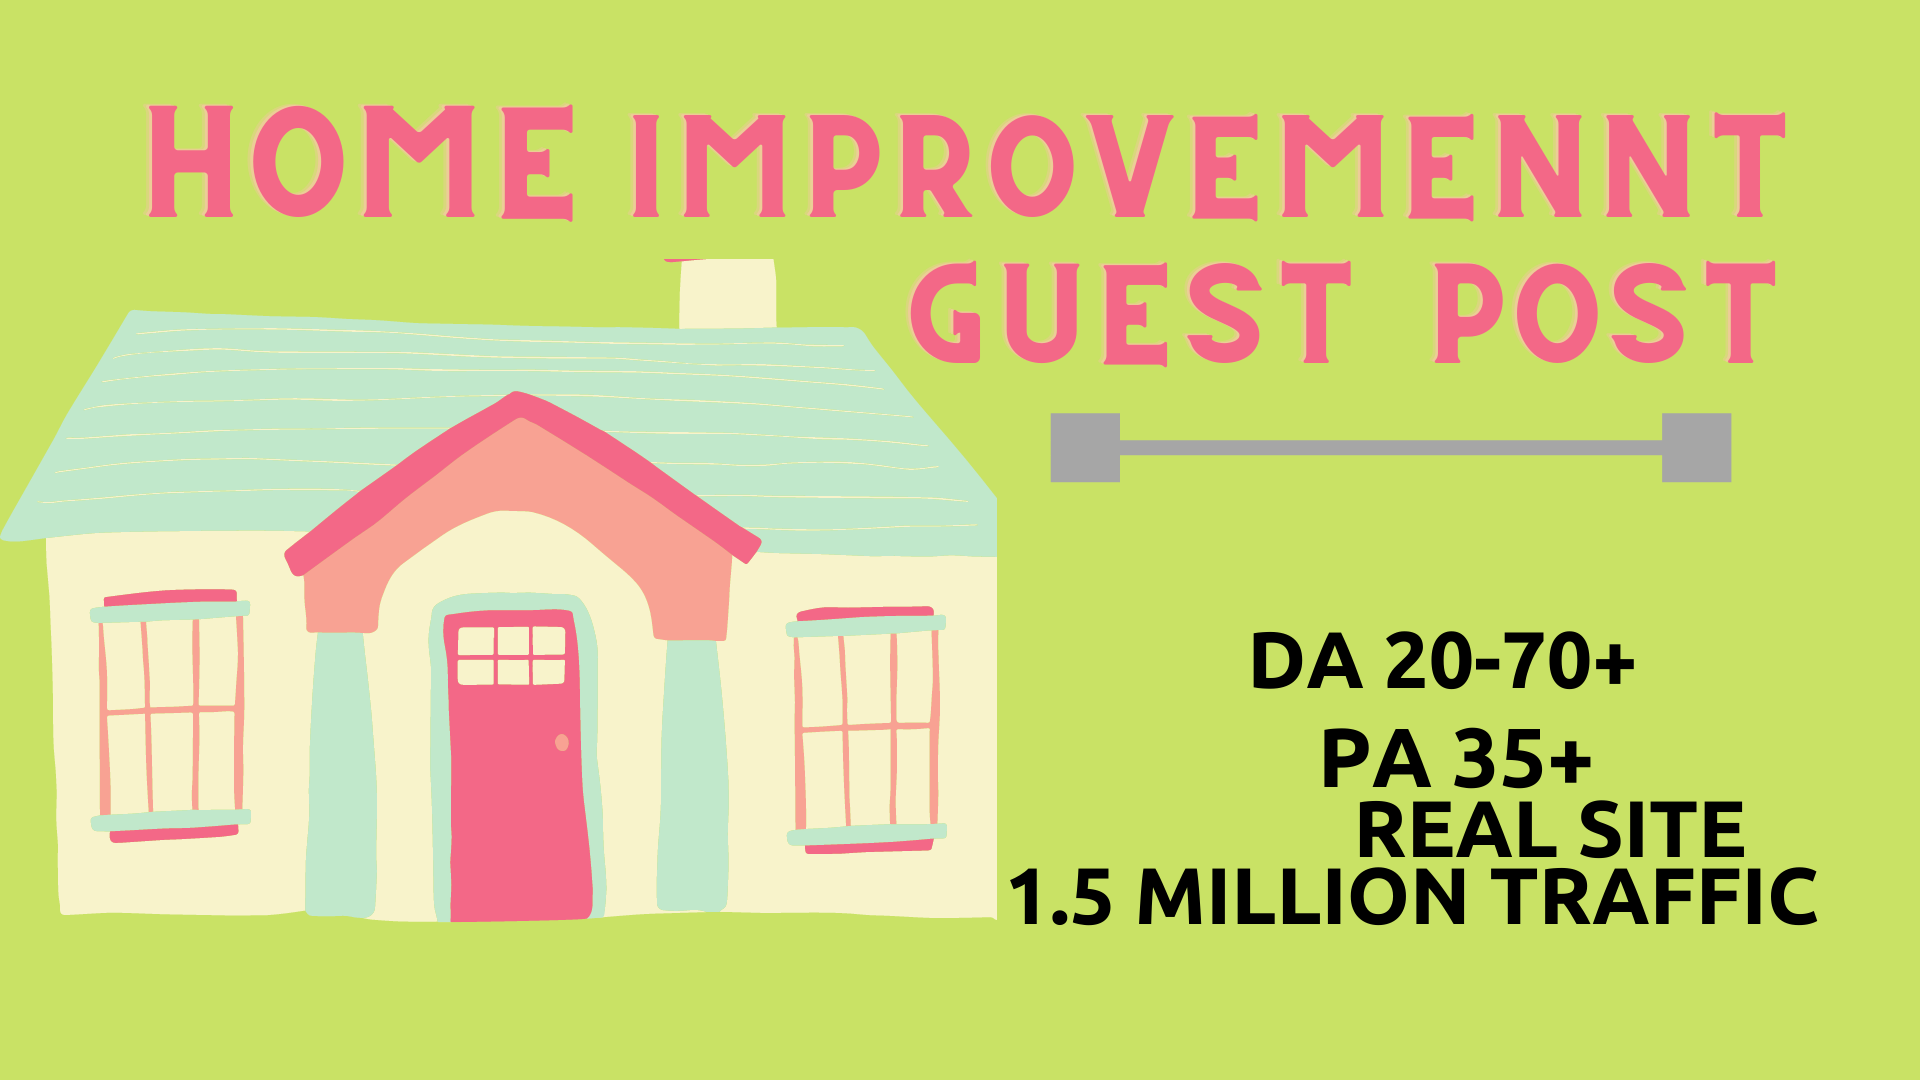 I will publish Home Improvement guest post